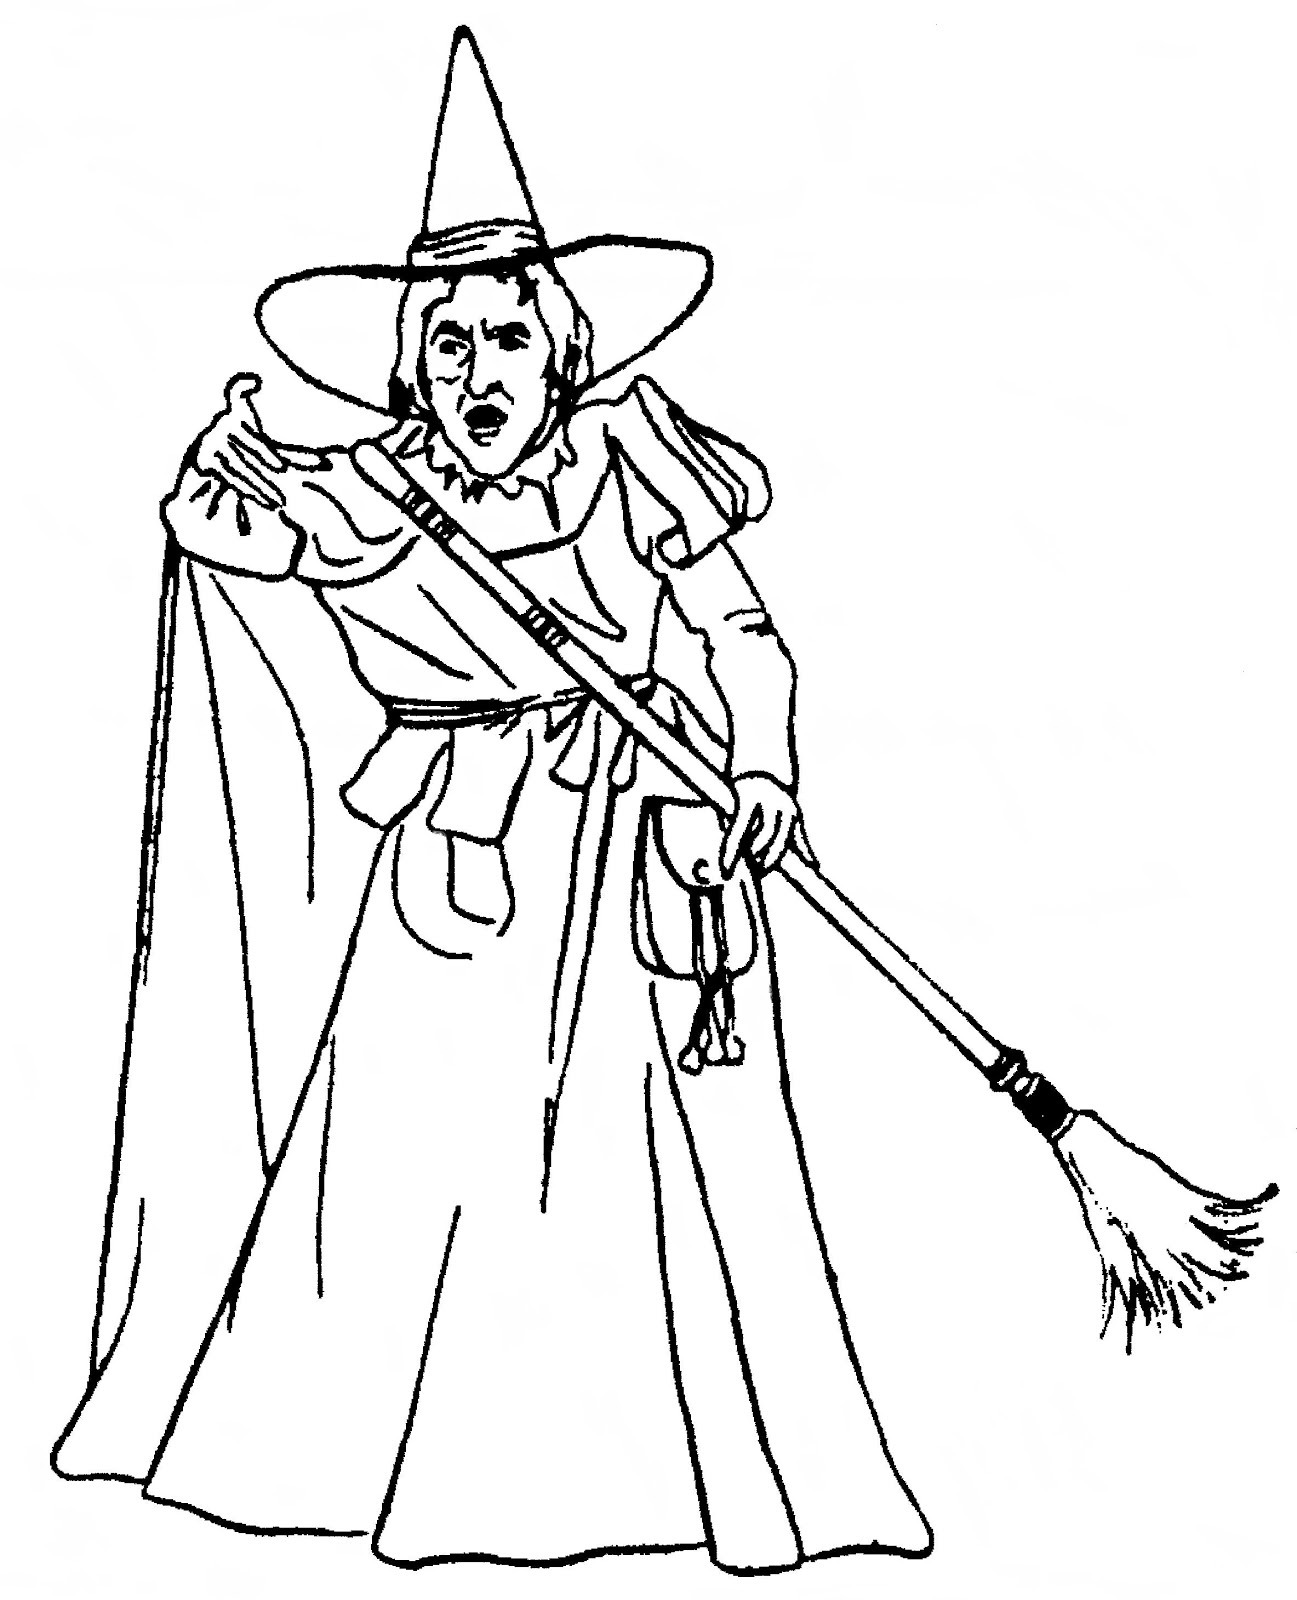 coloring pages wizard of oz wizard of oz kids colouring pictures to print and colour wizard oz coloring of pages